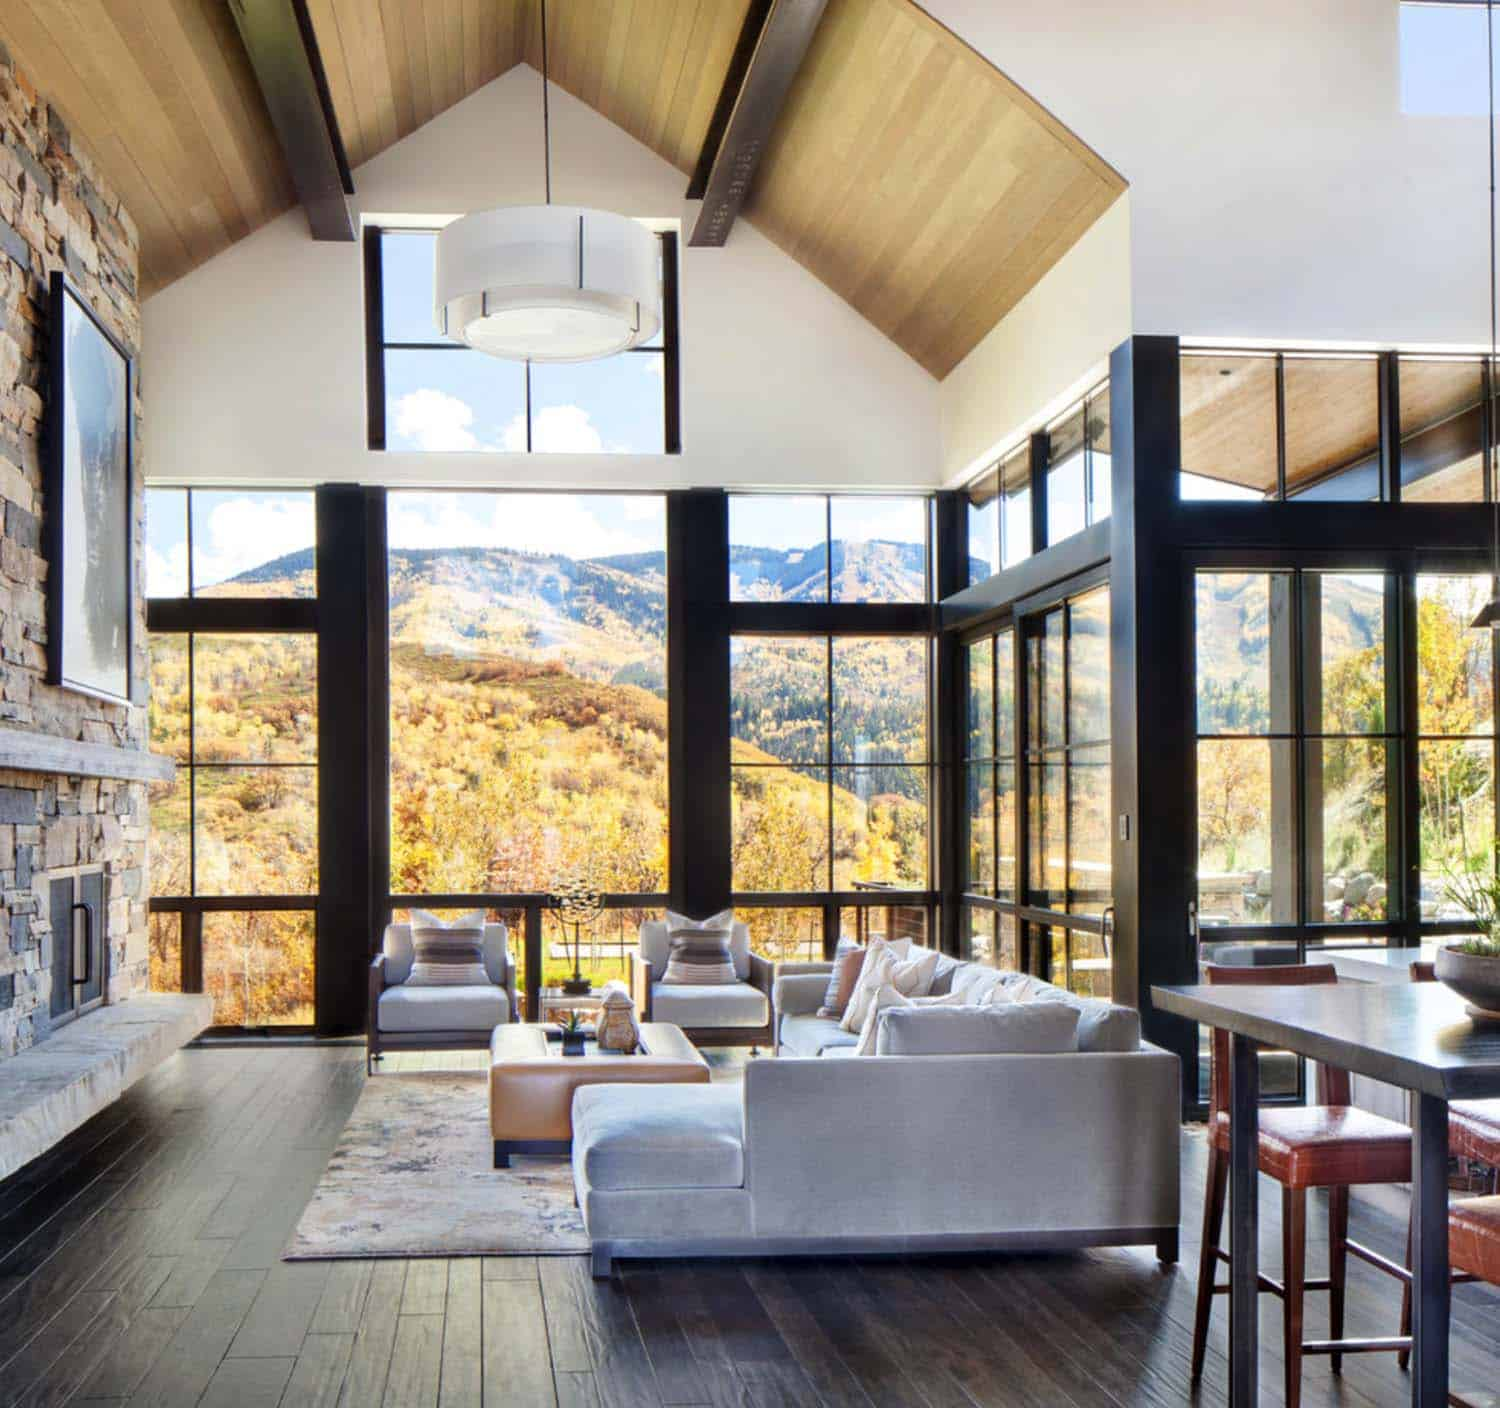 Home Design Ideas Architecture: Breathtaking Contemporary Mountain Home In Steamboat Springs